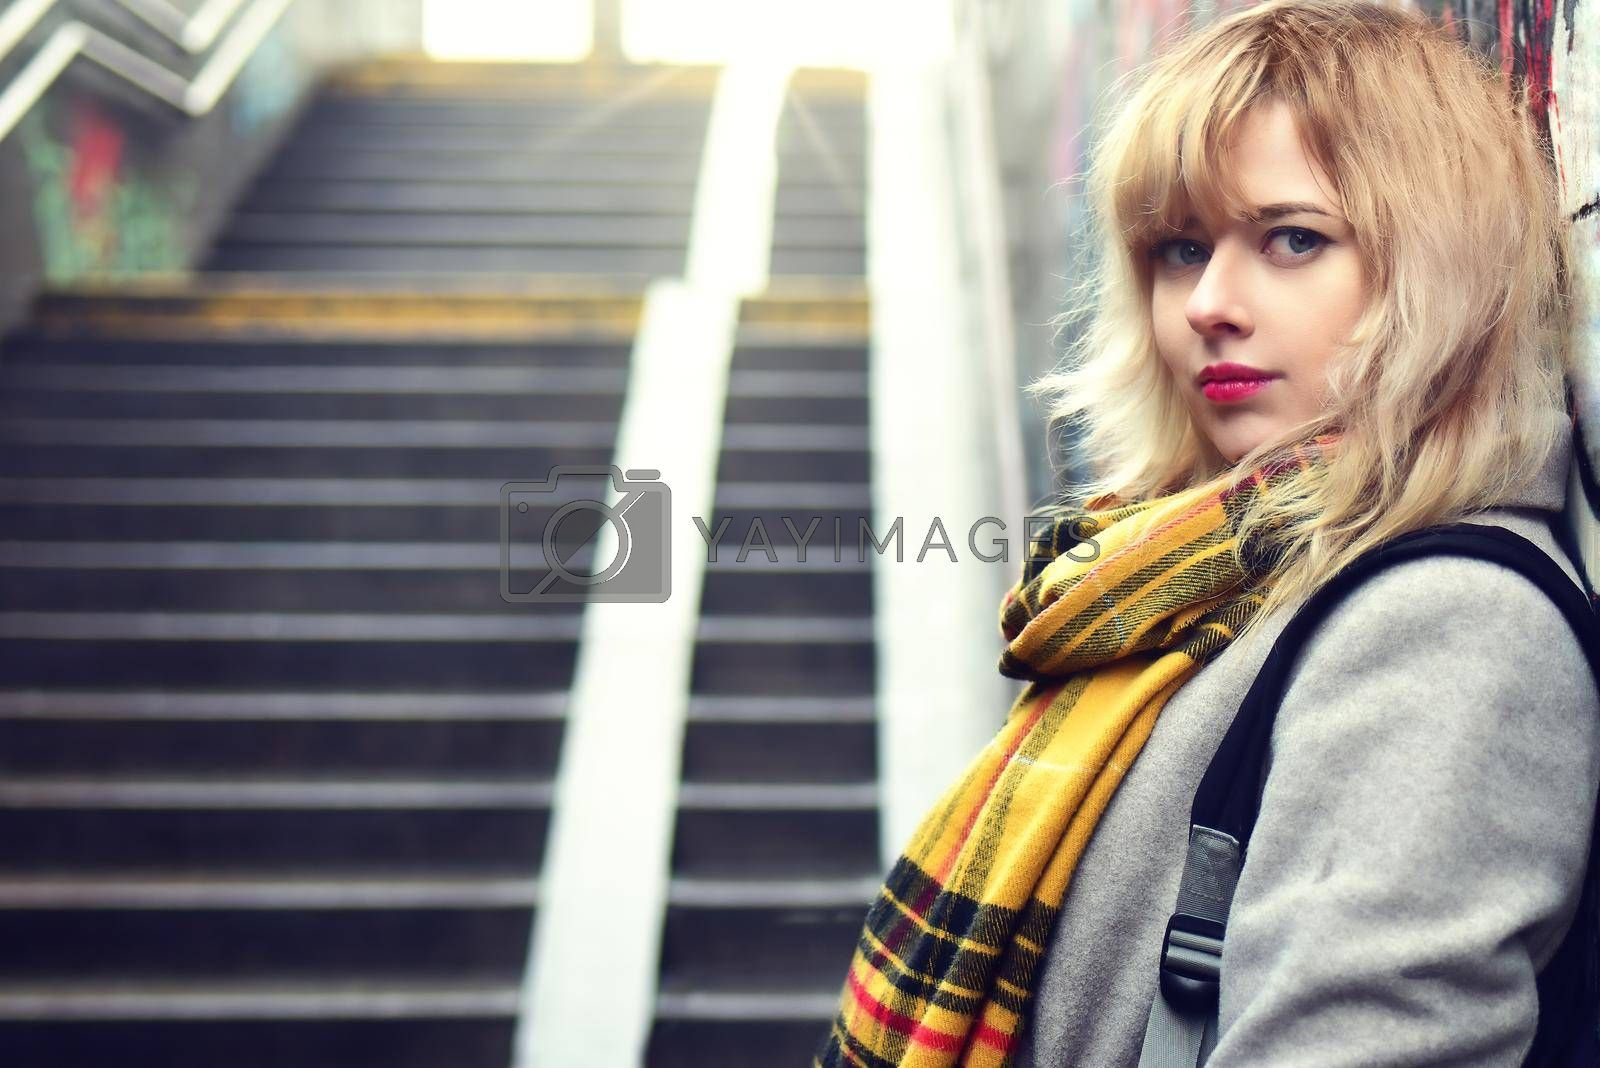 Royalty free image of Beautiful girl standing near a wall with graffiti in underground passage by Nickstock